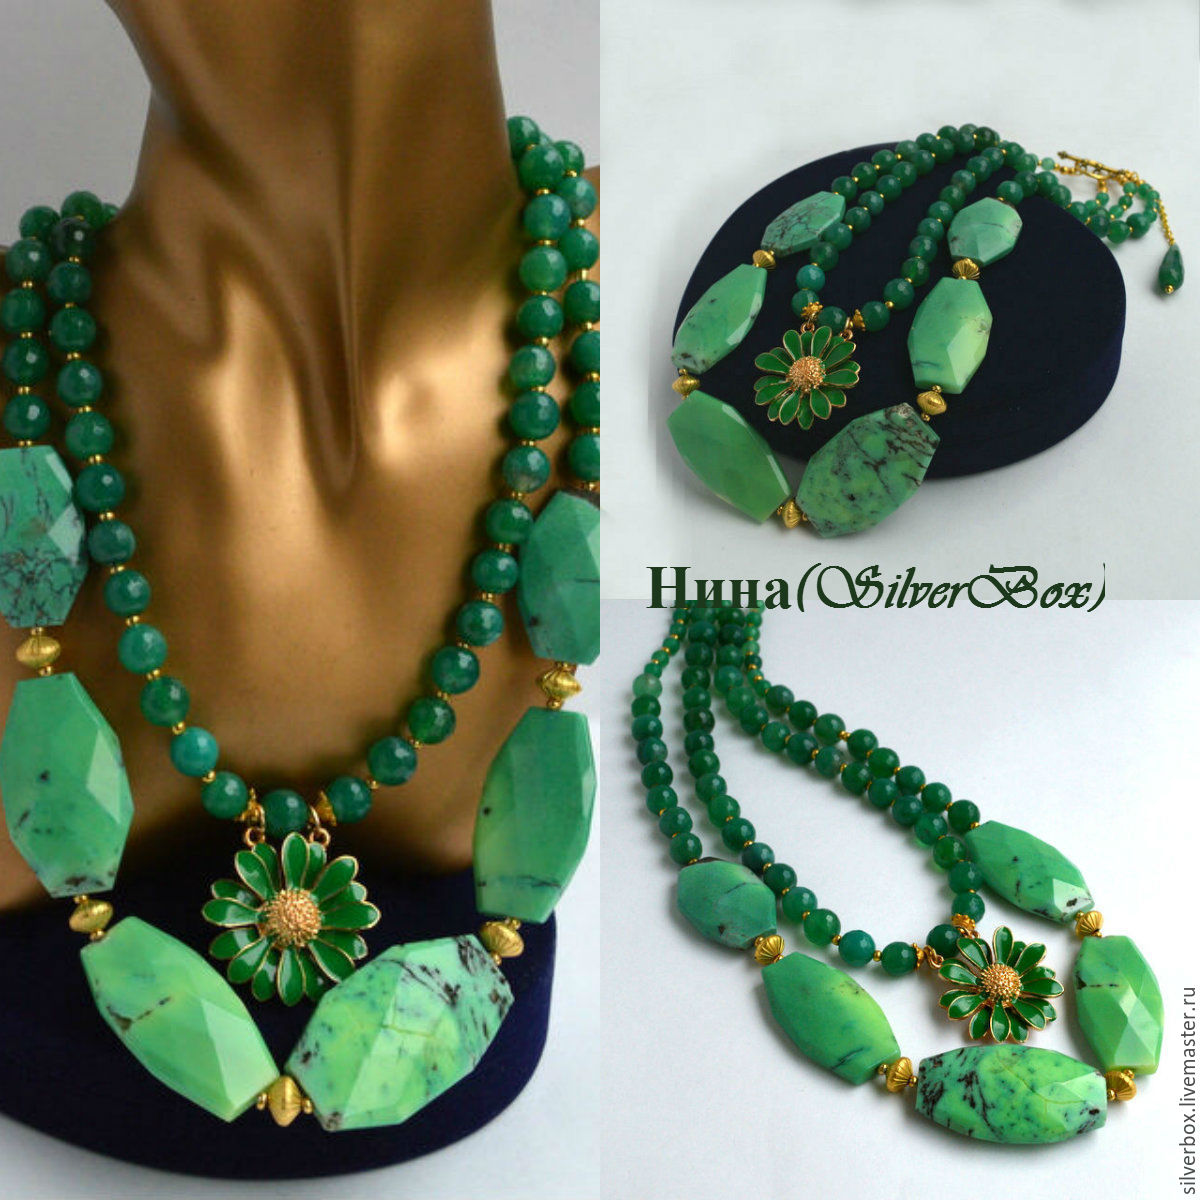 beach pangea format chrysoprase bones necklace shop